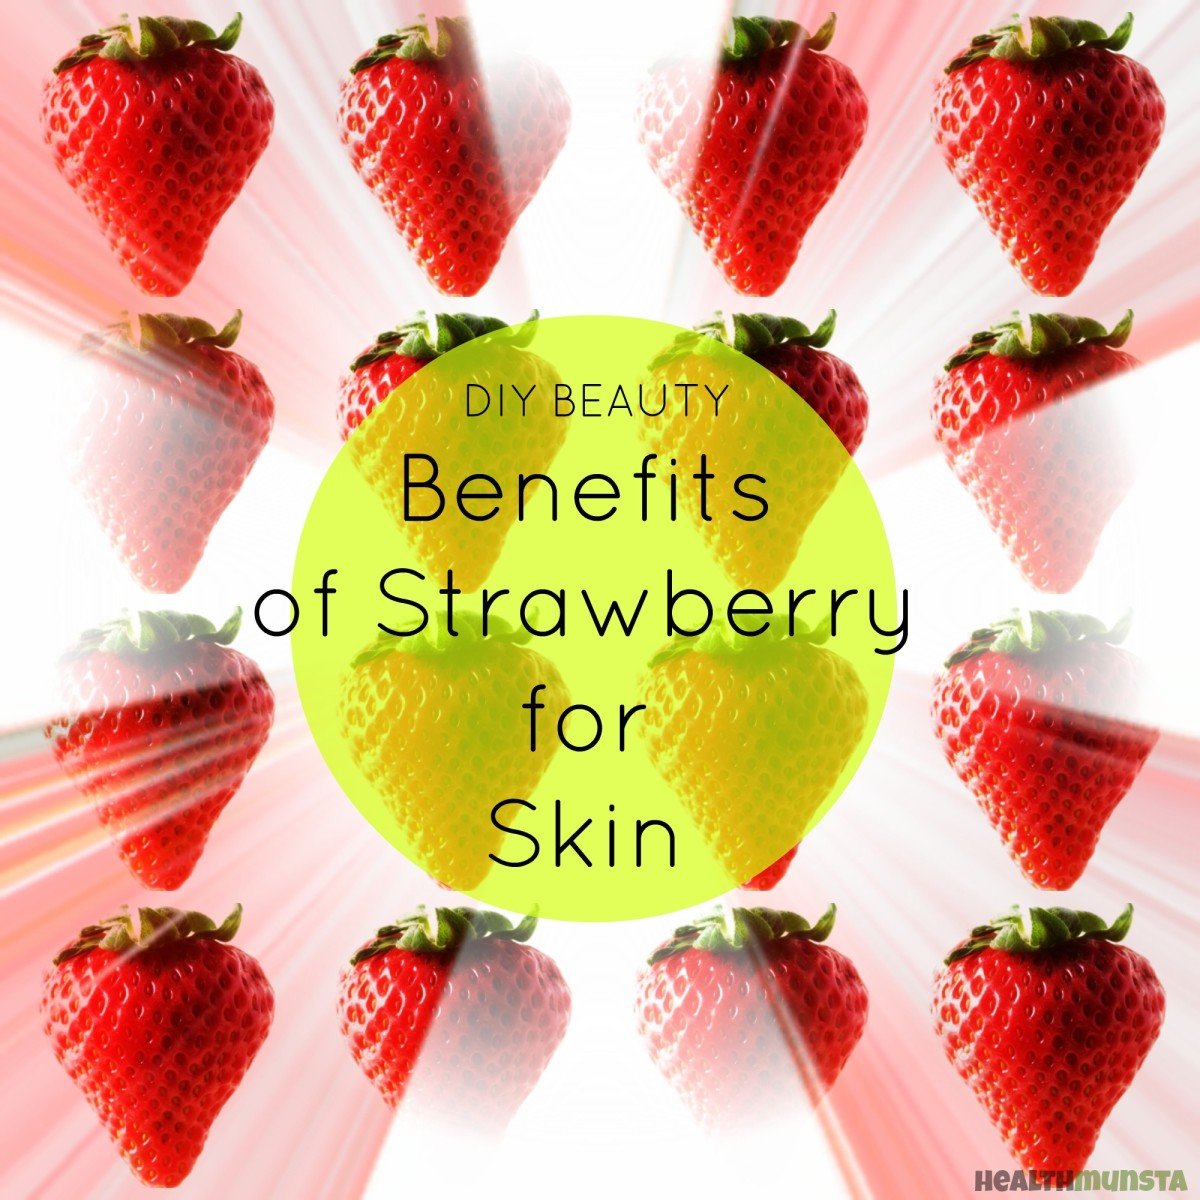 Strawberries are full of key fruit acids, including AHAs that contain amazing beauty benefits for skin.